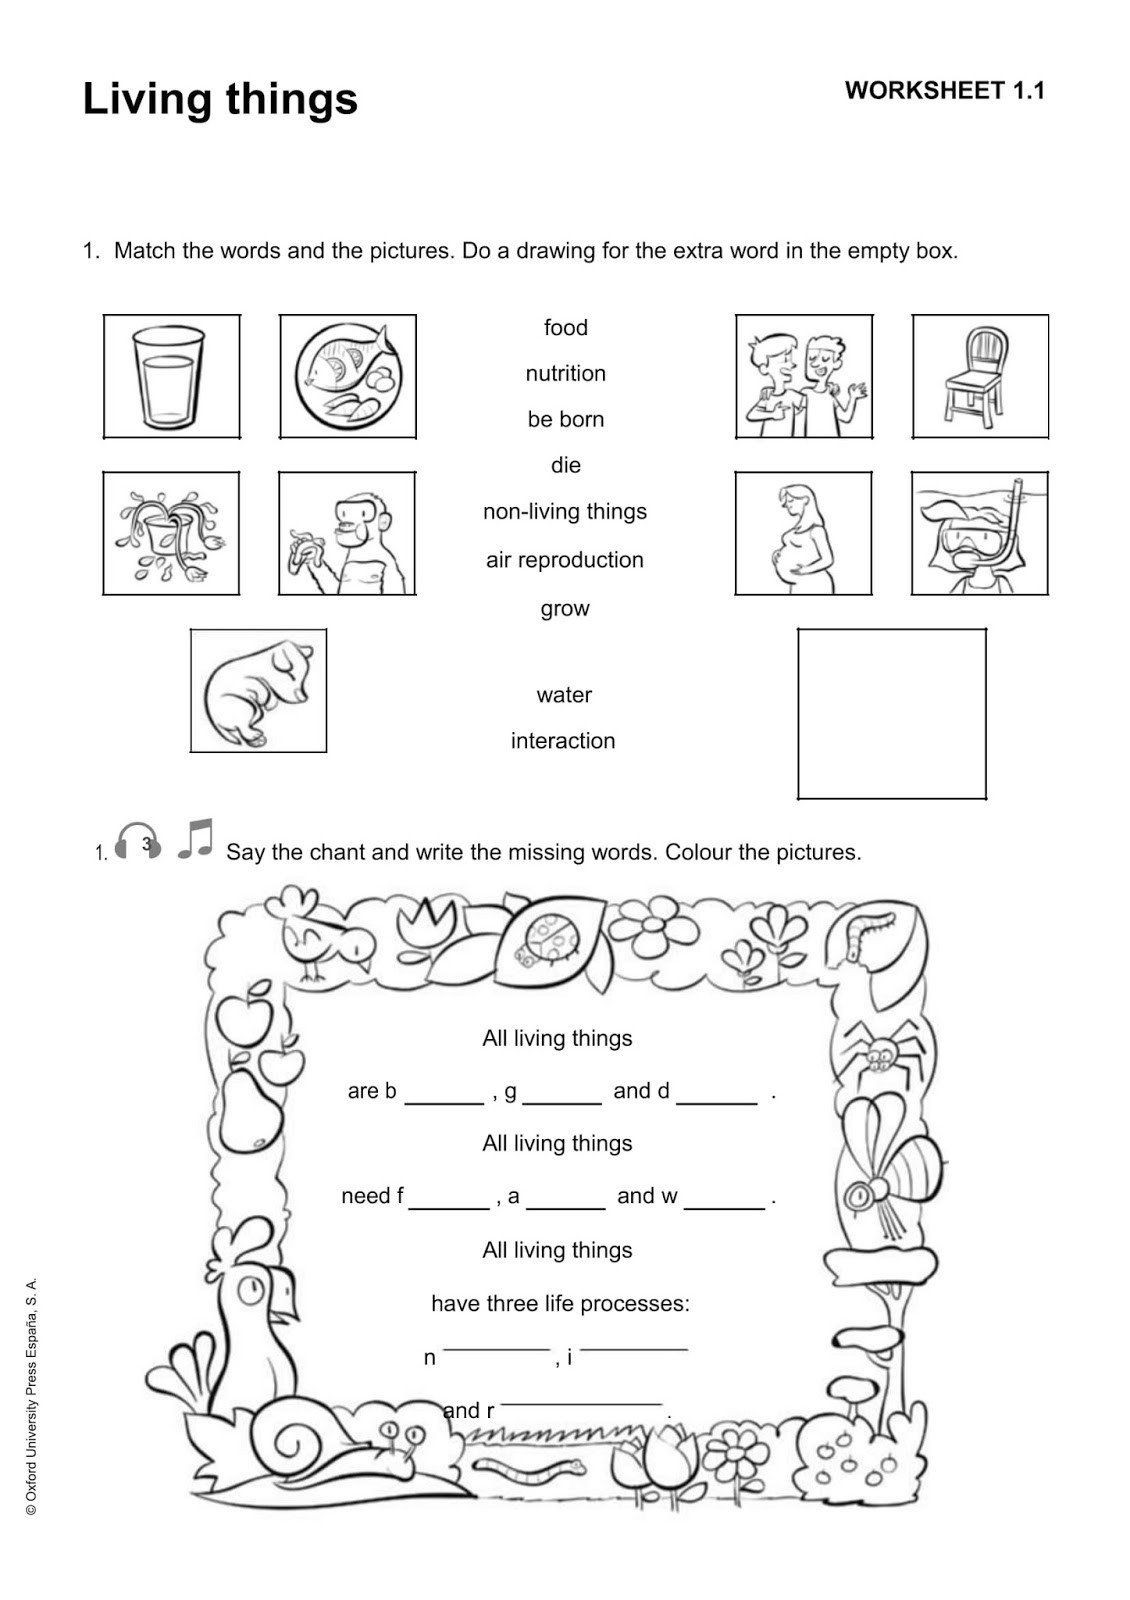 30 Plant Reproduction Worksheet Answers